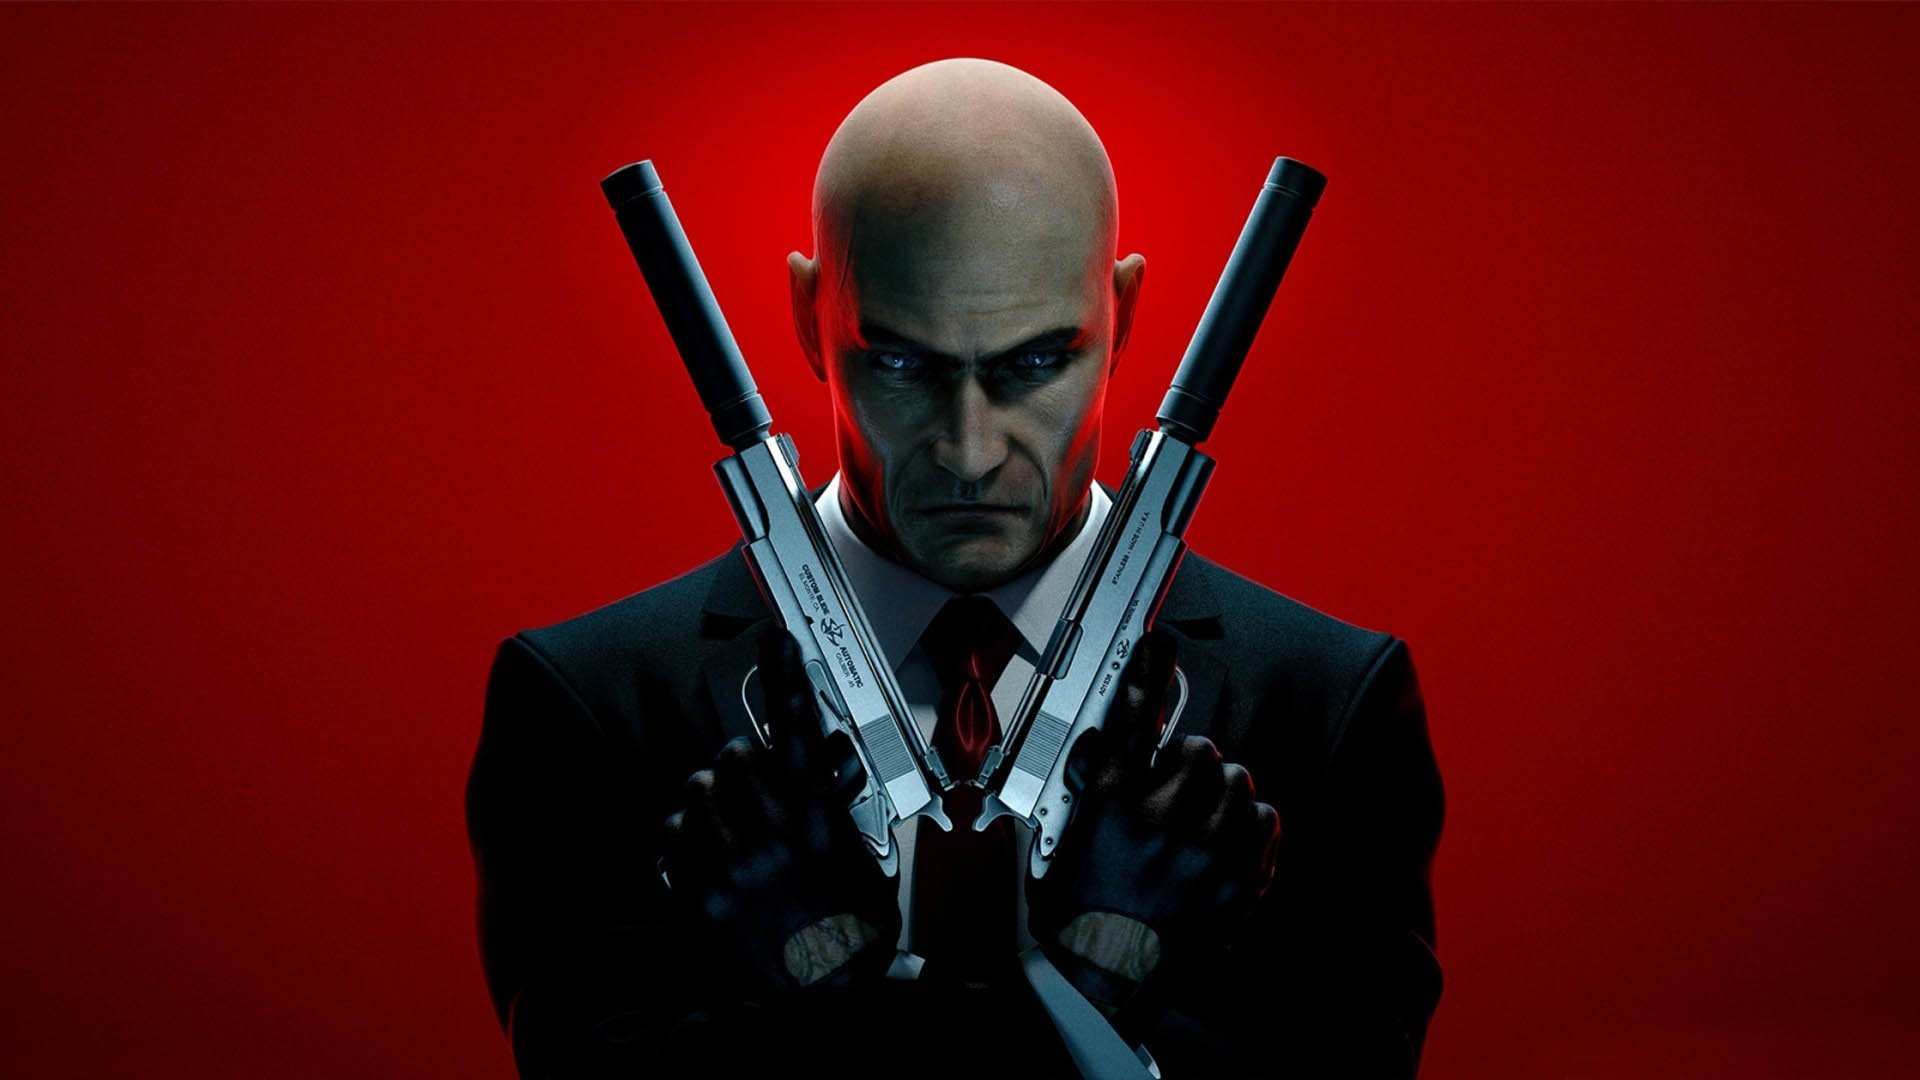 Hitman 3 Is Being Developed By Io Interactive May Return To The